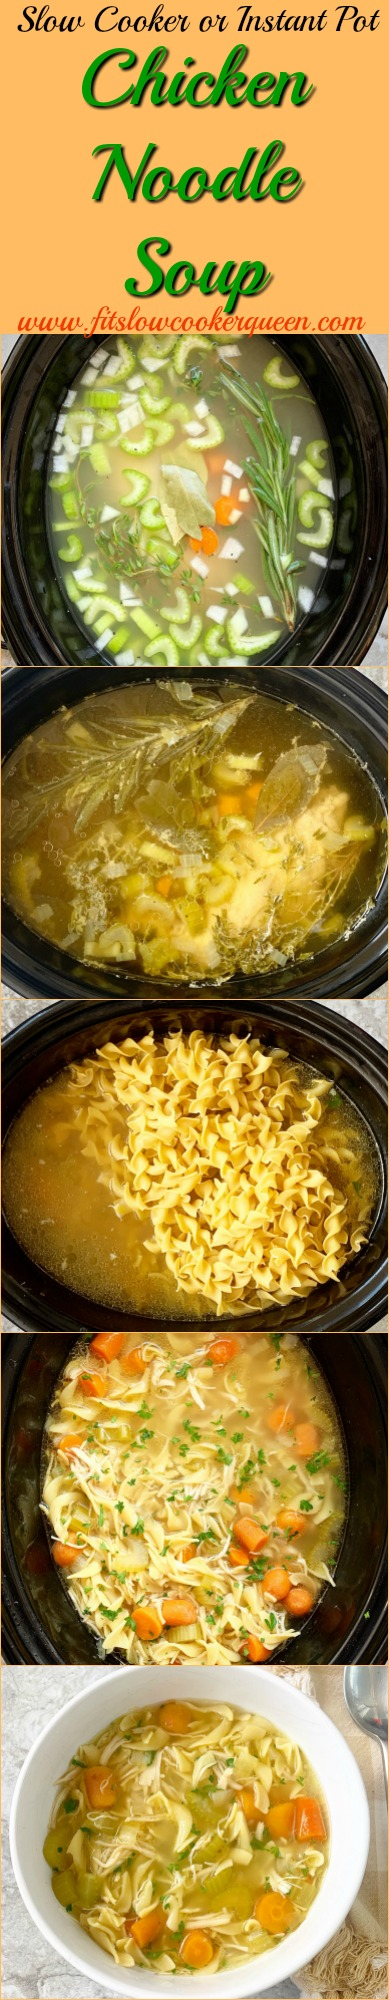 another Pinterest pin for Slow Cooker_Instant Pot Chicken Noodle Soup pin1